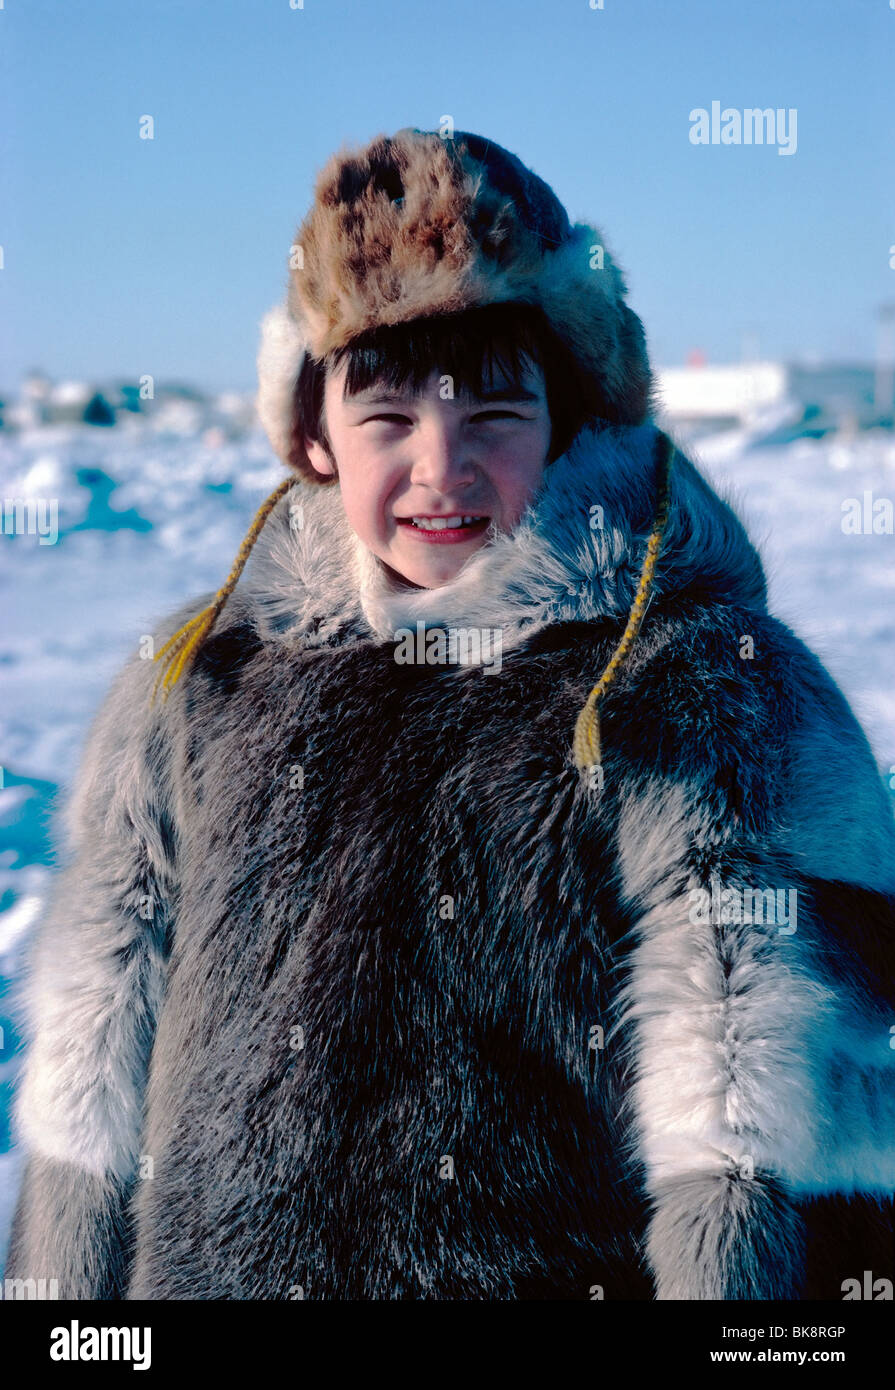 Nigel Boddy, young native boy, dressed in traditional Inuit skin clothing, Iqaluit, Baffin Island, Nunavut, Canada - Stock Image